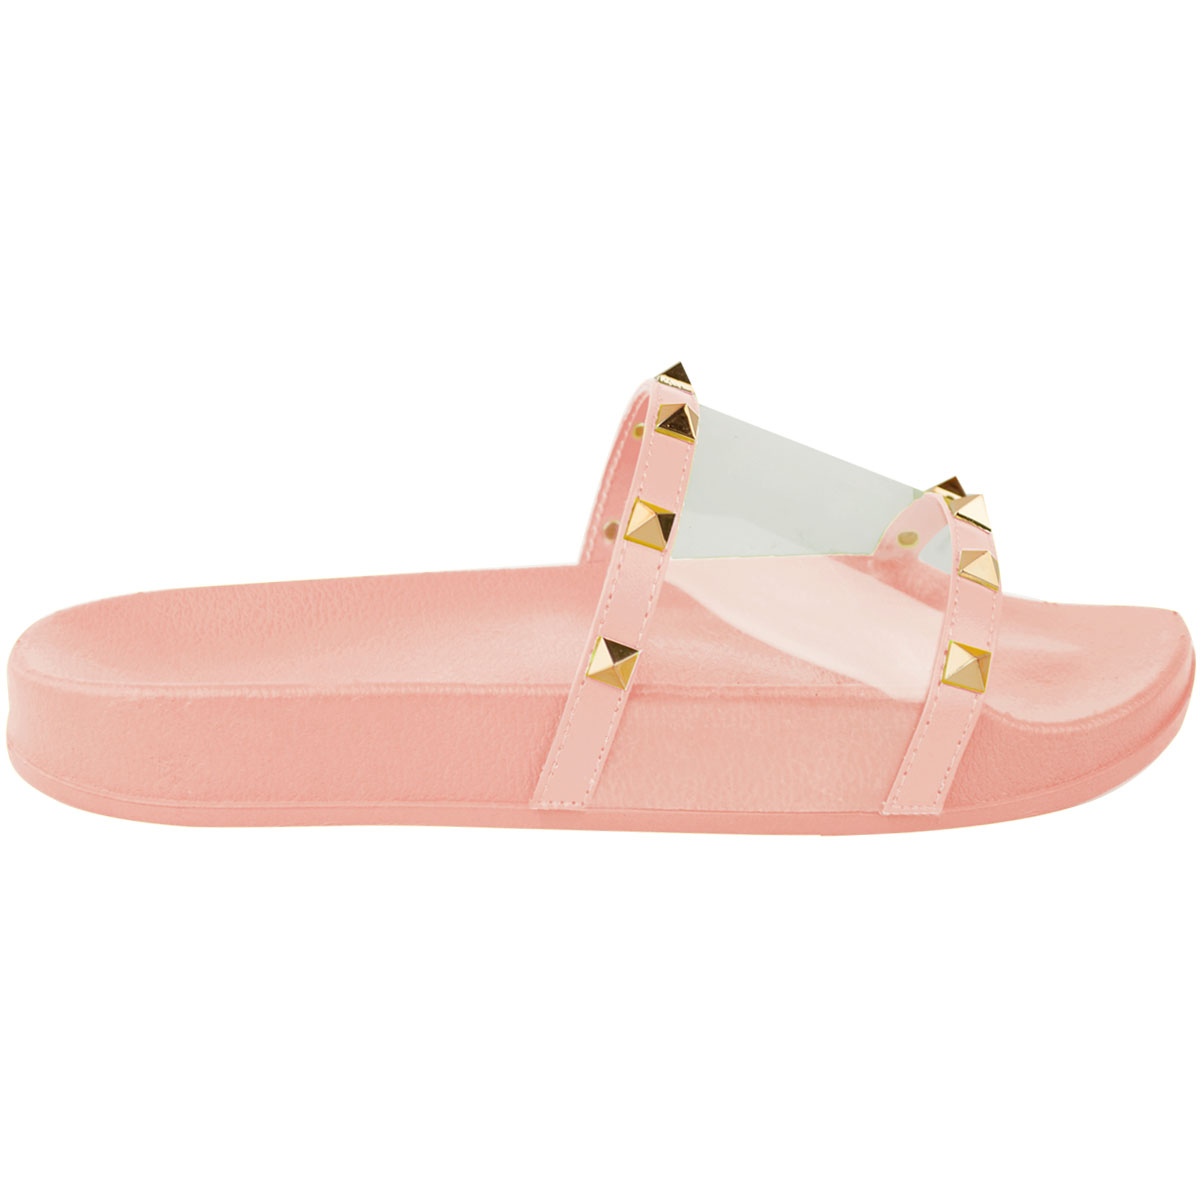 Details about Womens Ladies Flat Studded Perspex Clear Sliders Summers Sandals Flip Flops Size